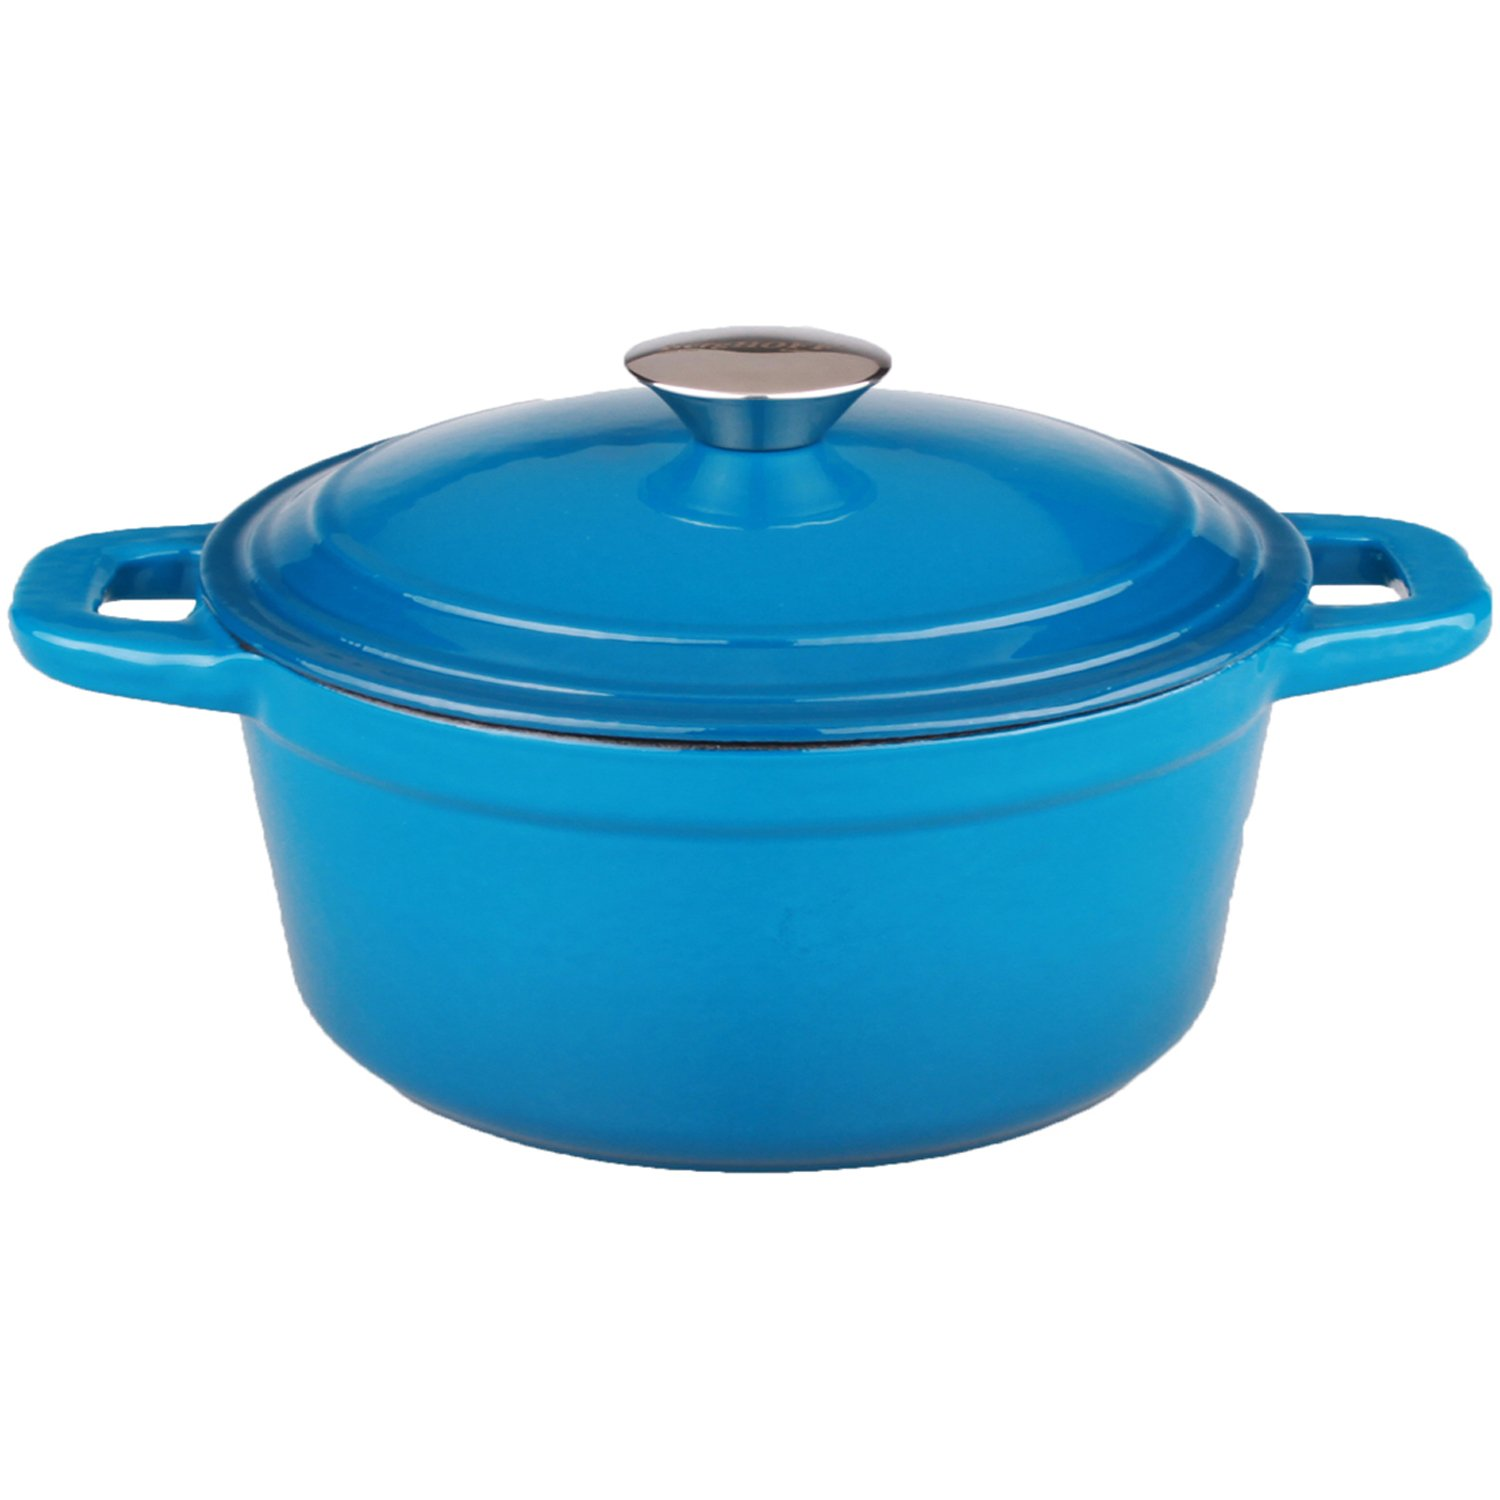 Berghoff Neo Cast Iron Stockpot with a Lid, Blue, 3-Qt.